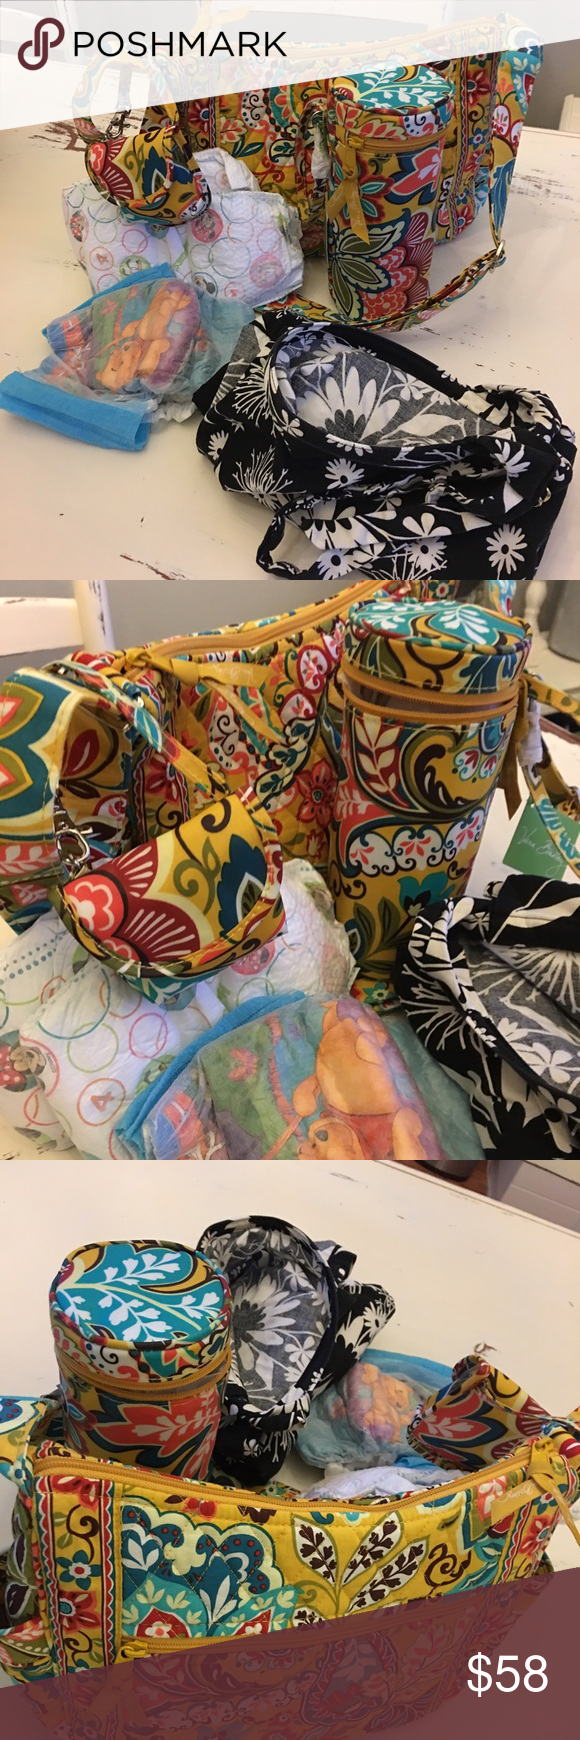 Vera Bradley/bag and bottle caddy and pacifier pod BUNDLE ❗️GREAT DEAL‼️Vera Bradley diaper bag no tag but new.,with baby bottle caddy and pacifier pod. Vera Bradley Bags Baby Bags